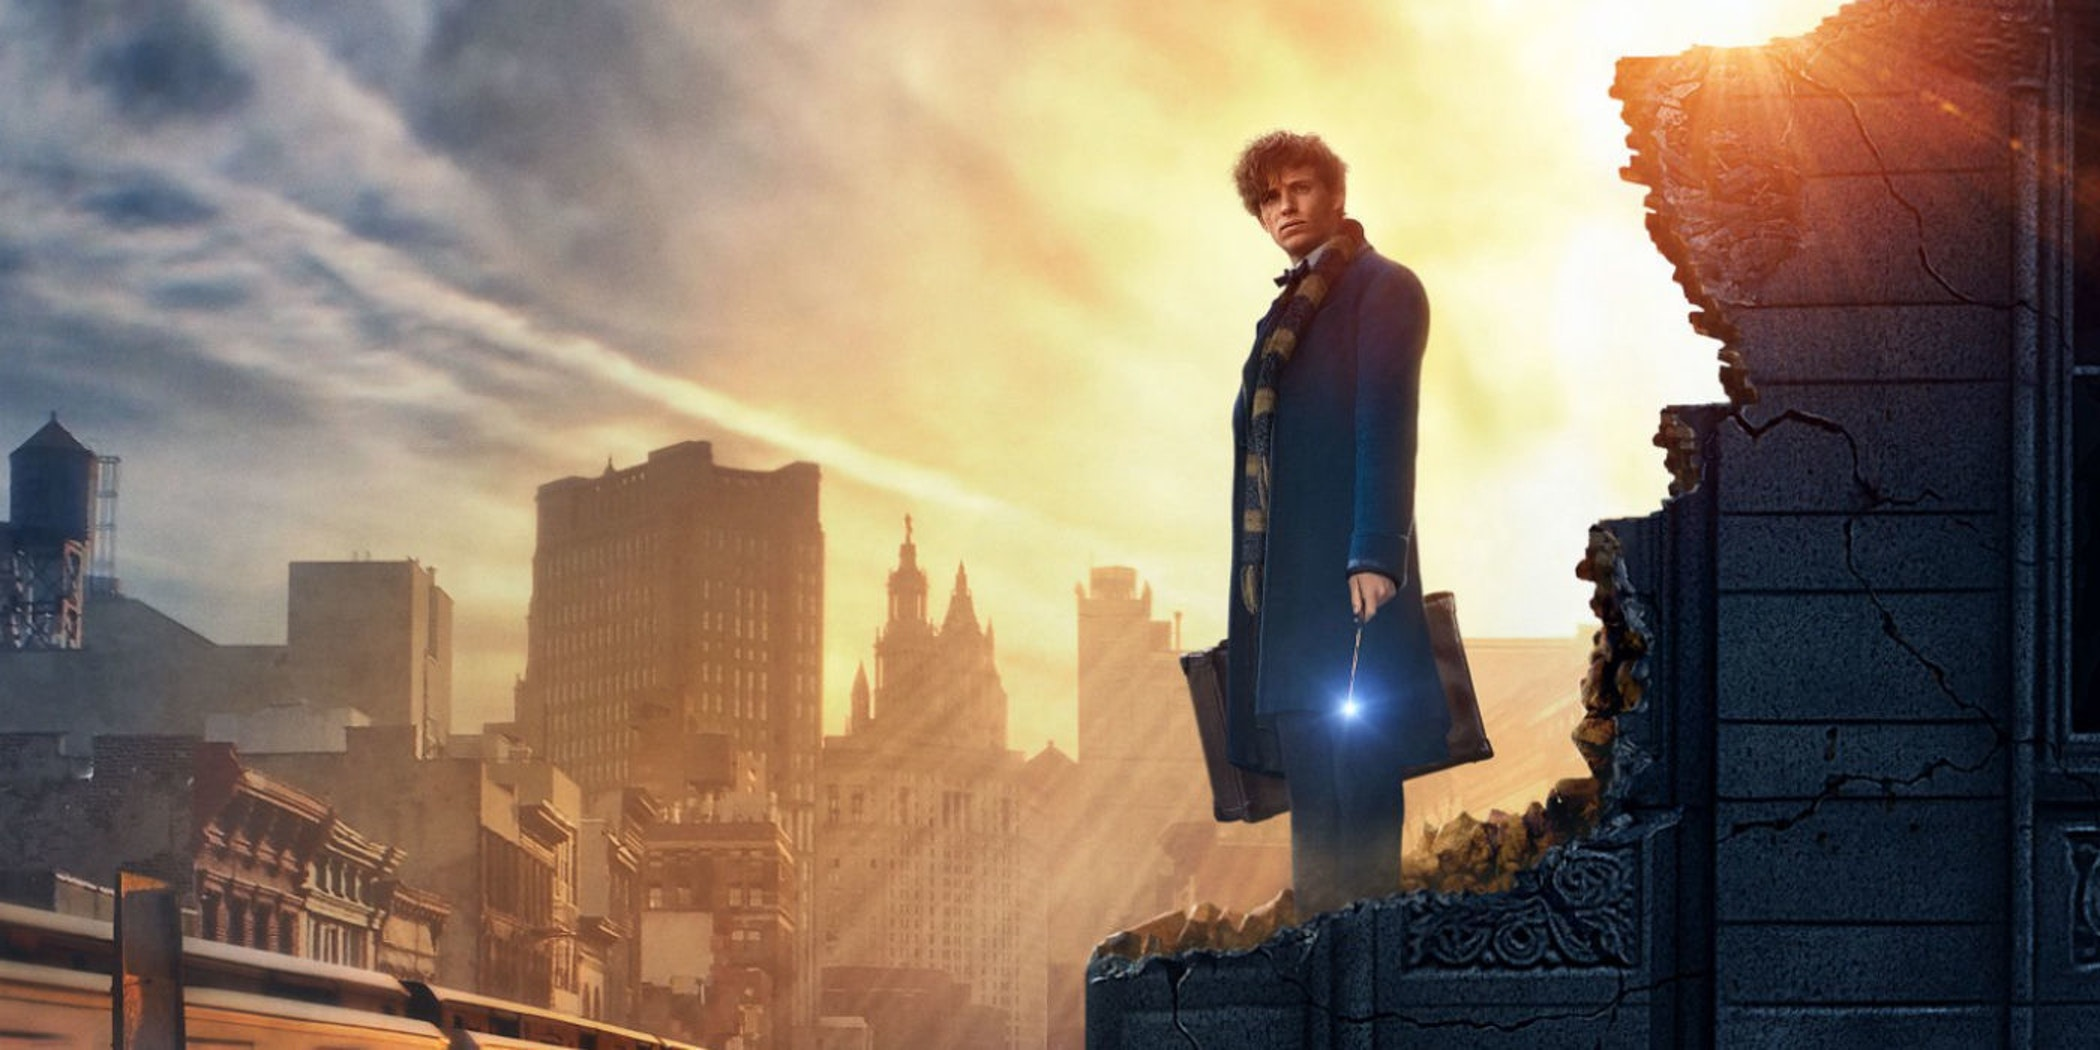 'Fantastic Beasts' Reviews Praise Rowling's Rich New World